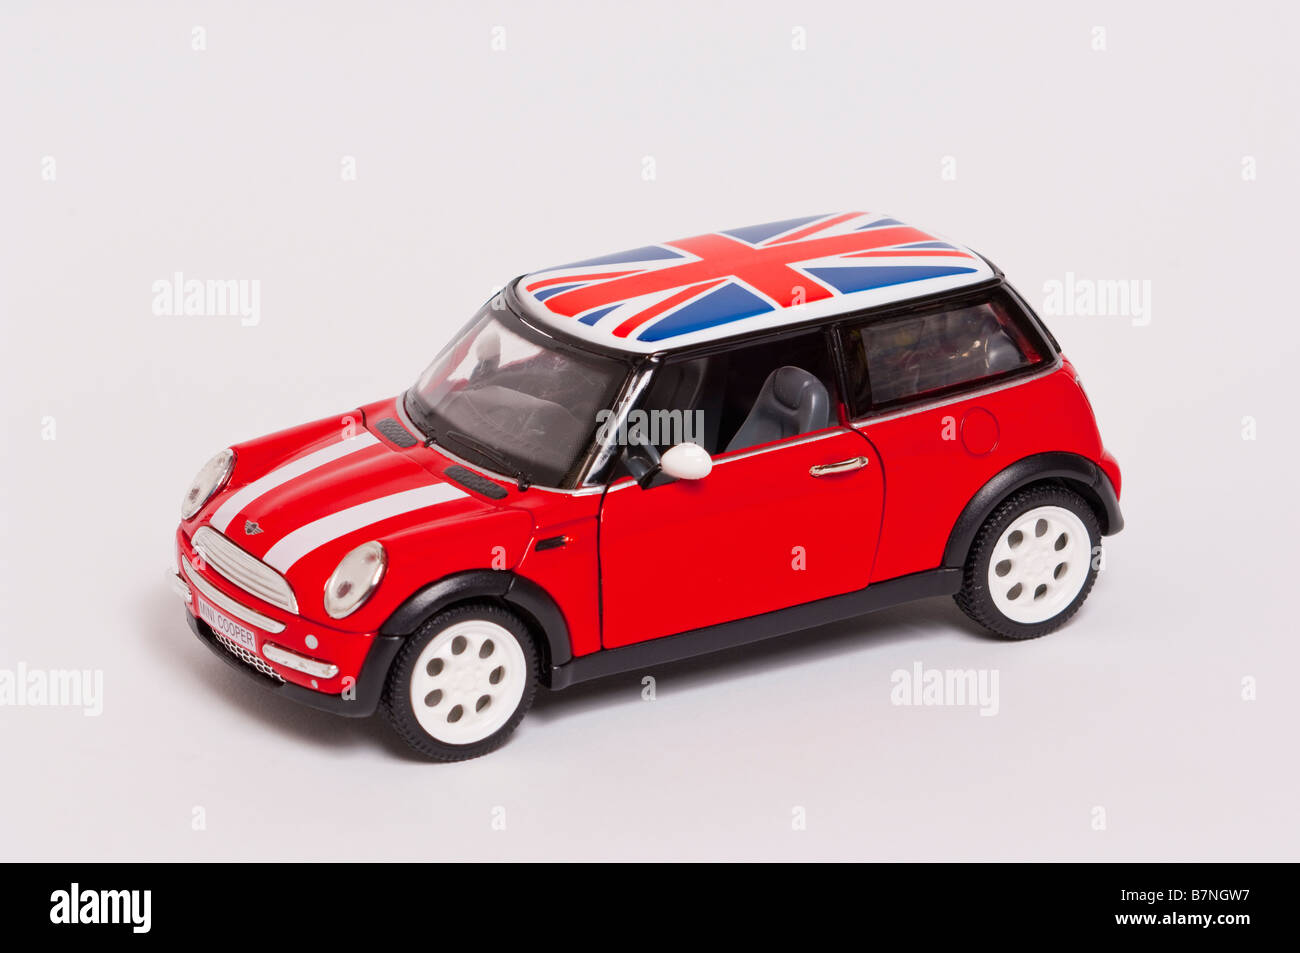 A Close Up Of A Toy Model Mini Cooper Car On A White Background